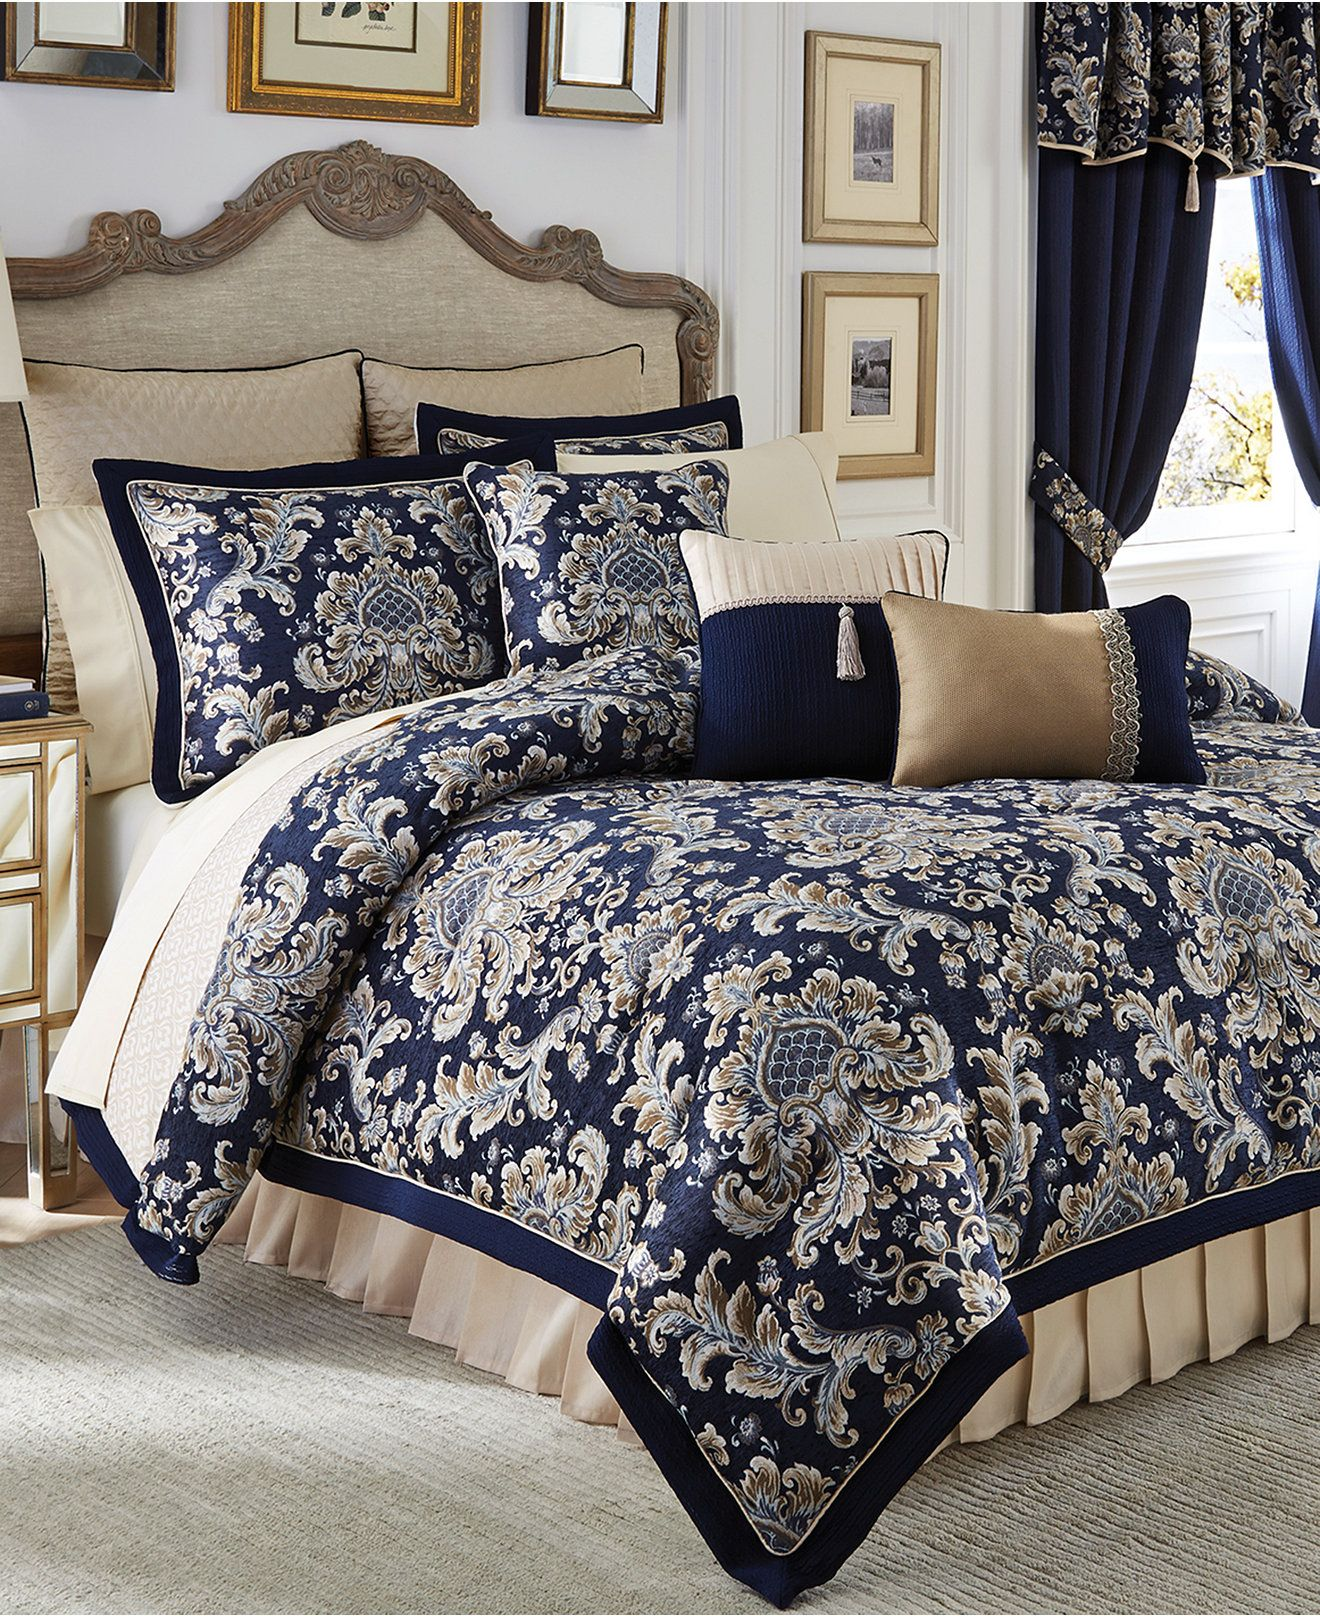 target comforter blue with mainstays ga piece bedding together sets ritzy safari walmart size bed turquoise considerable set jolly sh queen comforters king plus navy black kohls striped